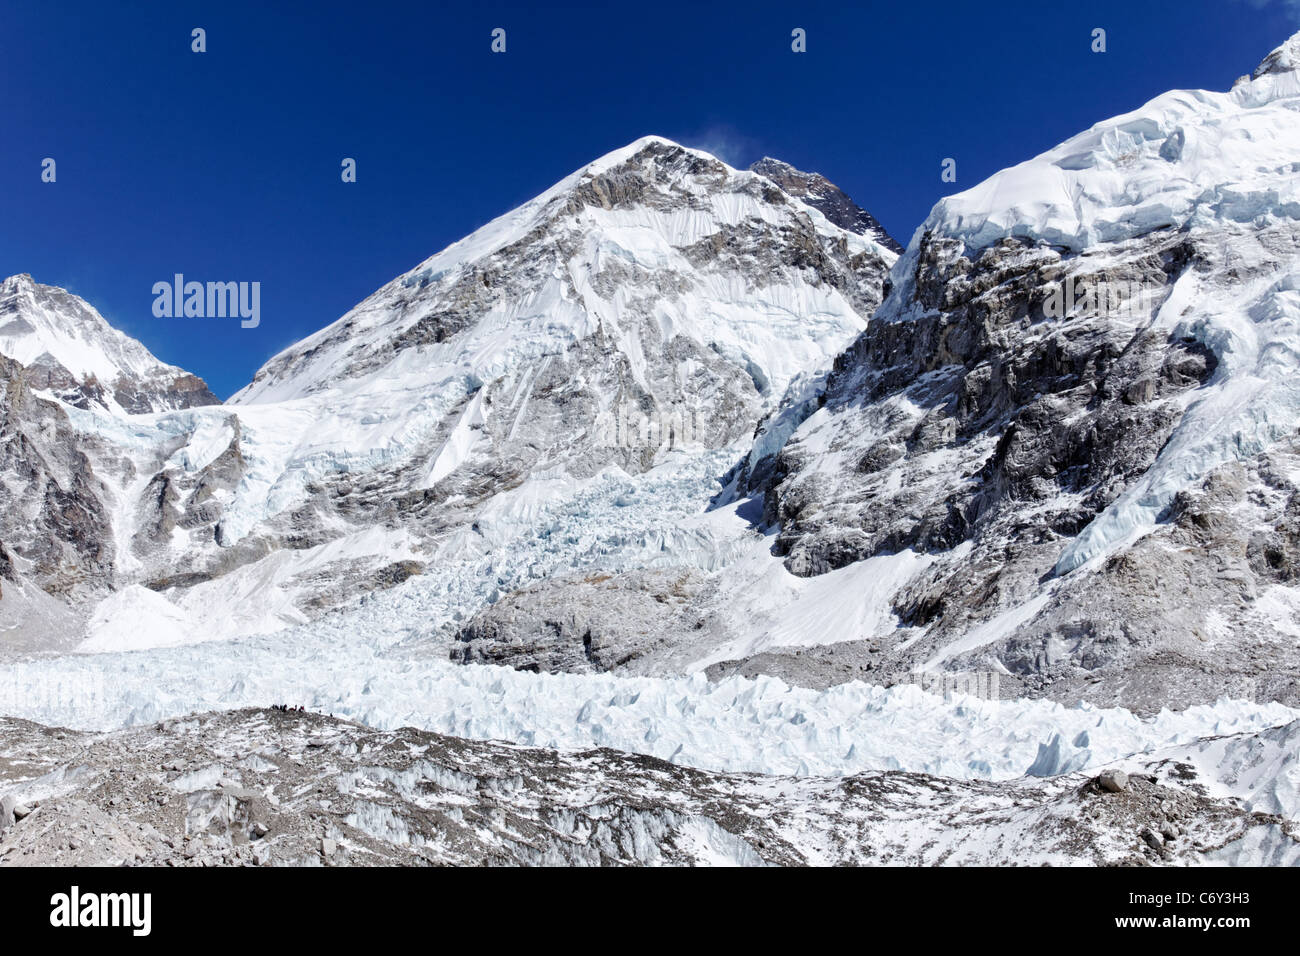 View of Everest Base Camp and the Khumbu Glacier, Everest Region, Nepal - Stock Image